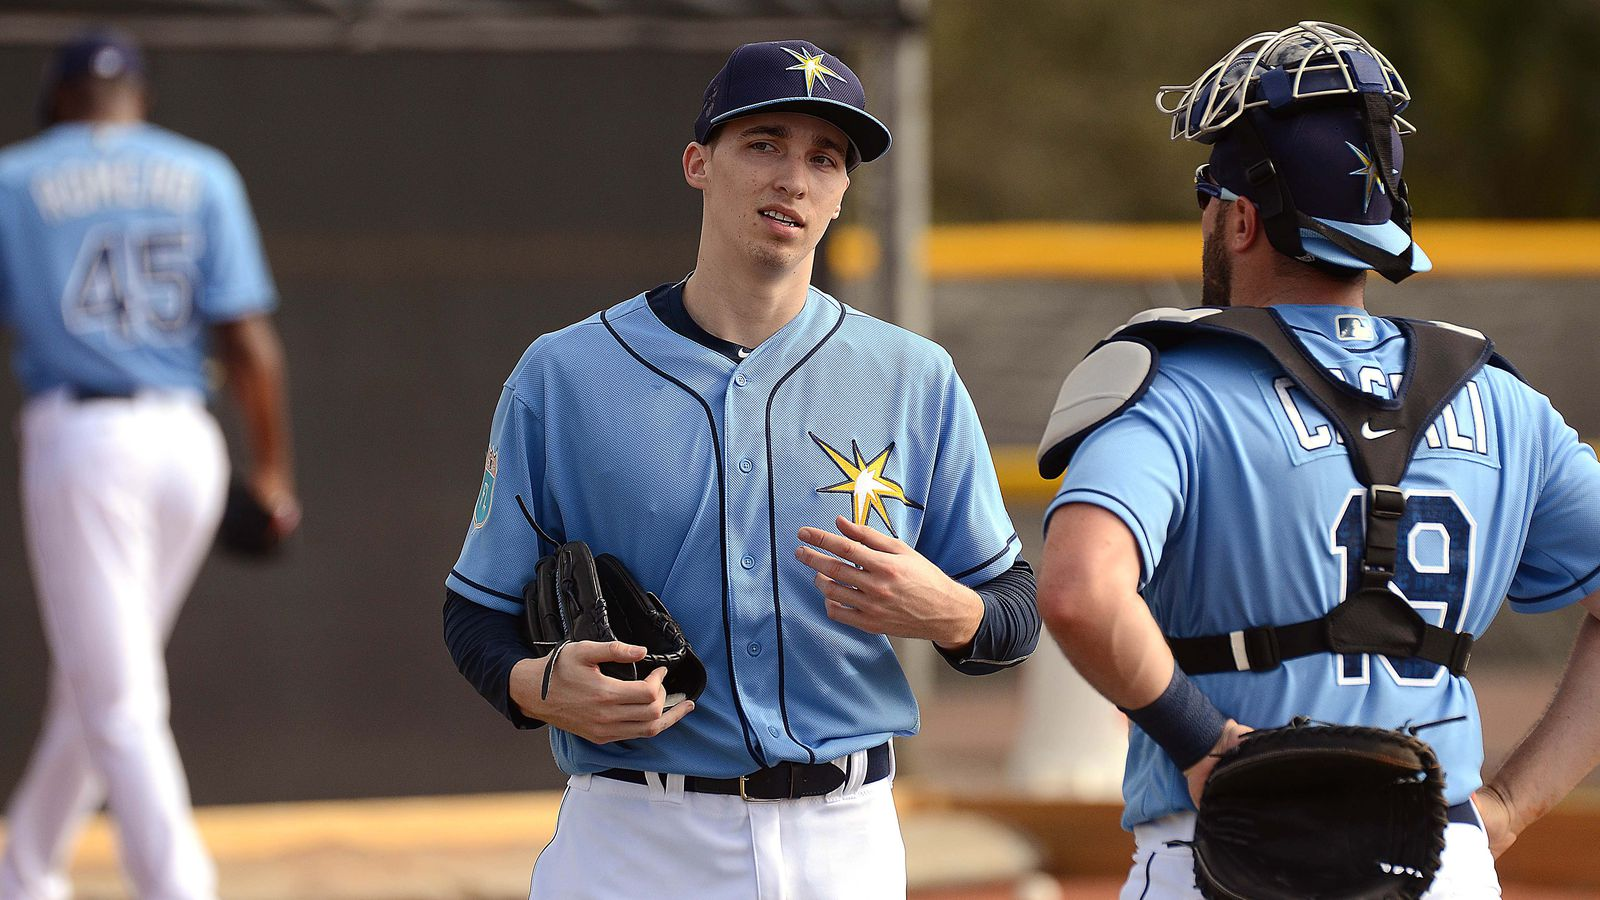 Tampa Bay Rays Top 20 prospects for 2016 - Minor League Ball e9d610c95